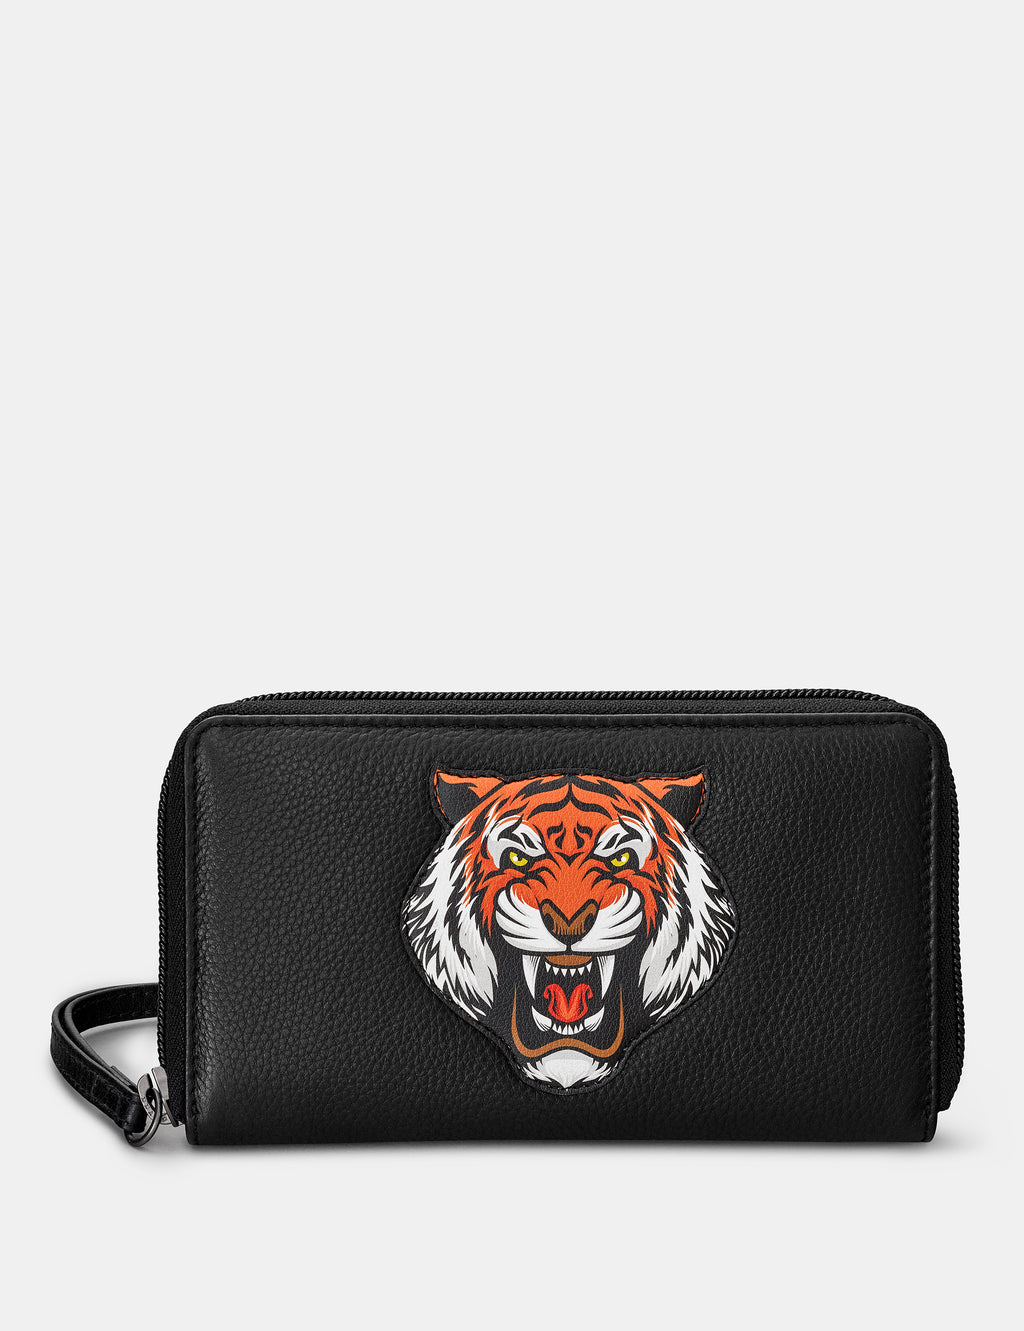 Tiger Black Zip Round Leather Purse With Strap